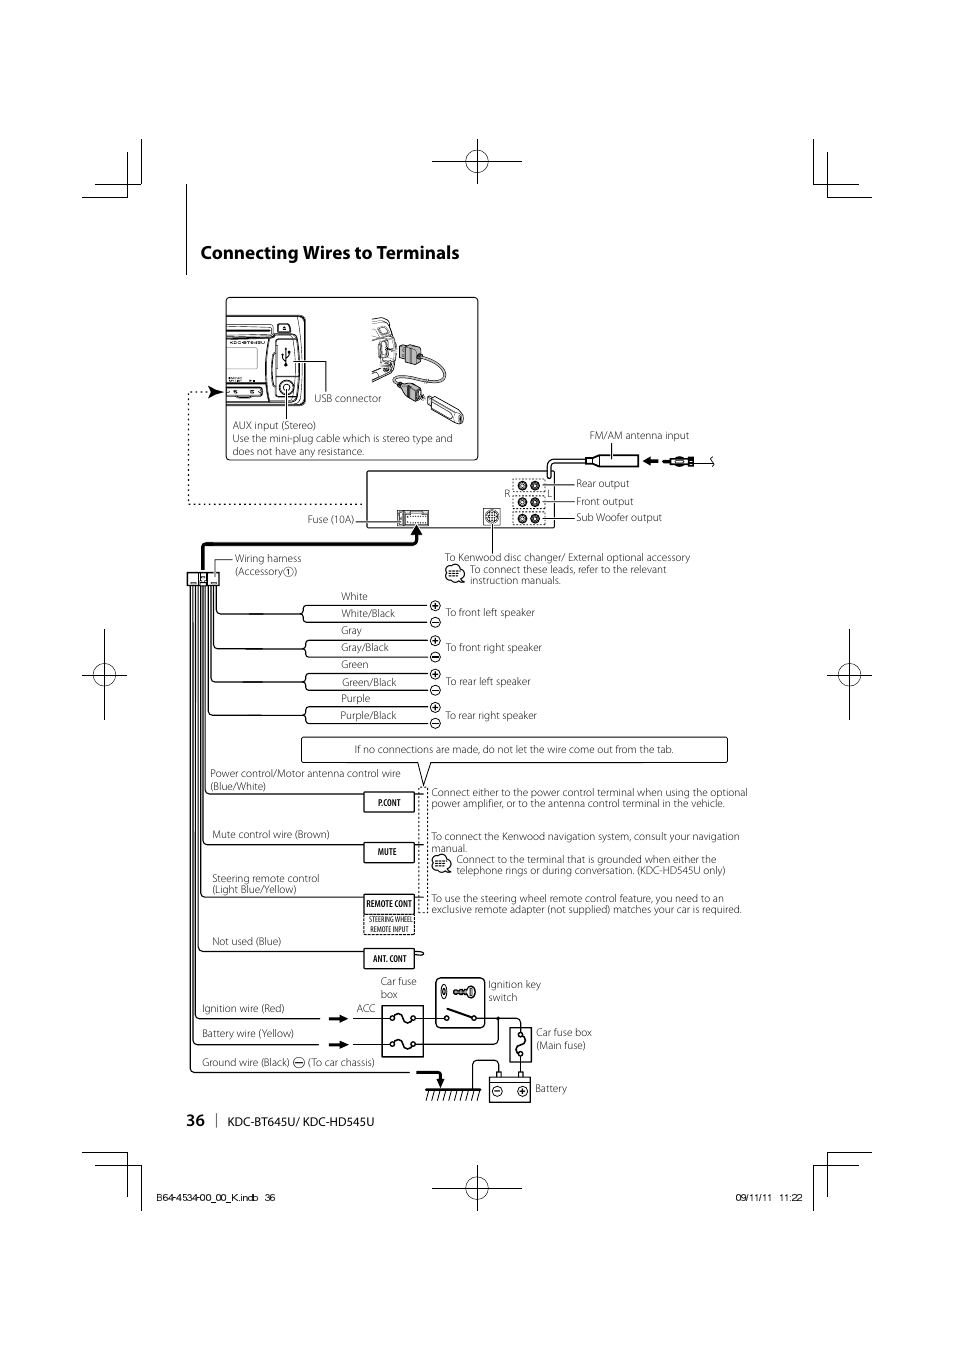 medium resolution of connecting wires to terminals kenwood kdc hd545u user manual schematic diagram connecting wires to terminals kenwood